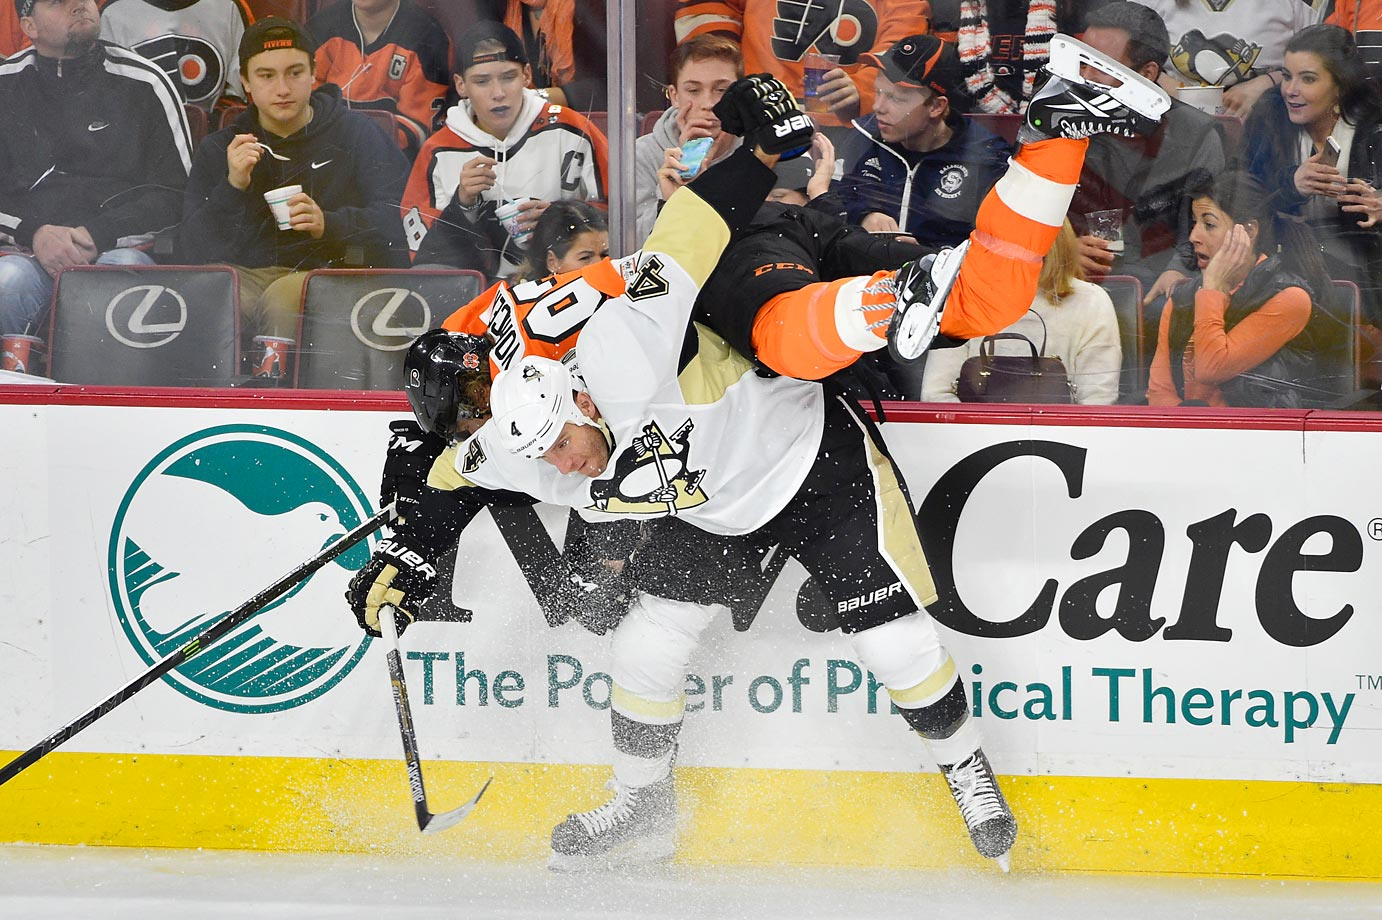 Pittsburgh Penguins defenseman Rob Scuderi body checks Philadelphia Flyers right wing Jakub Voracek.